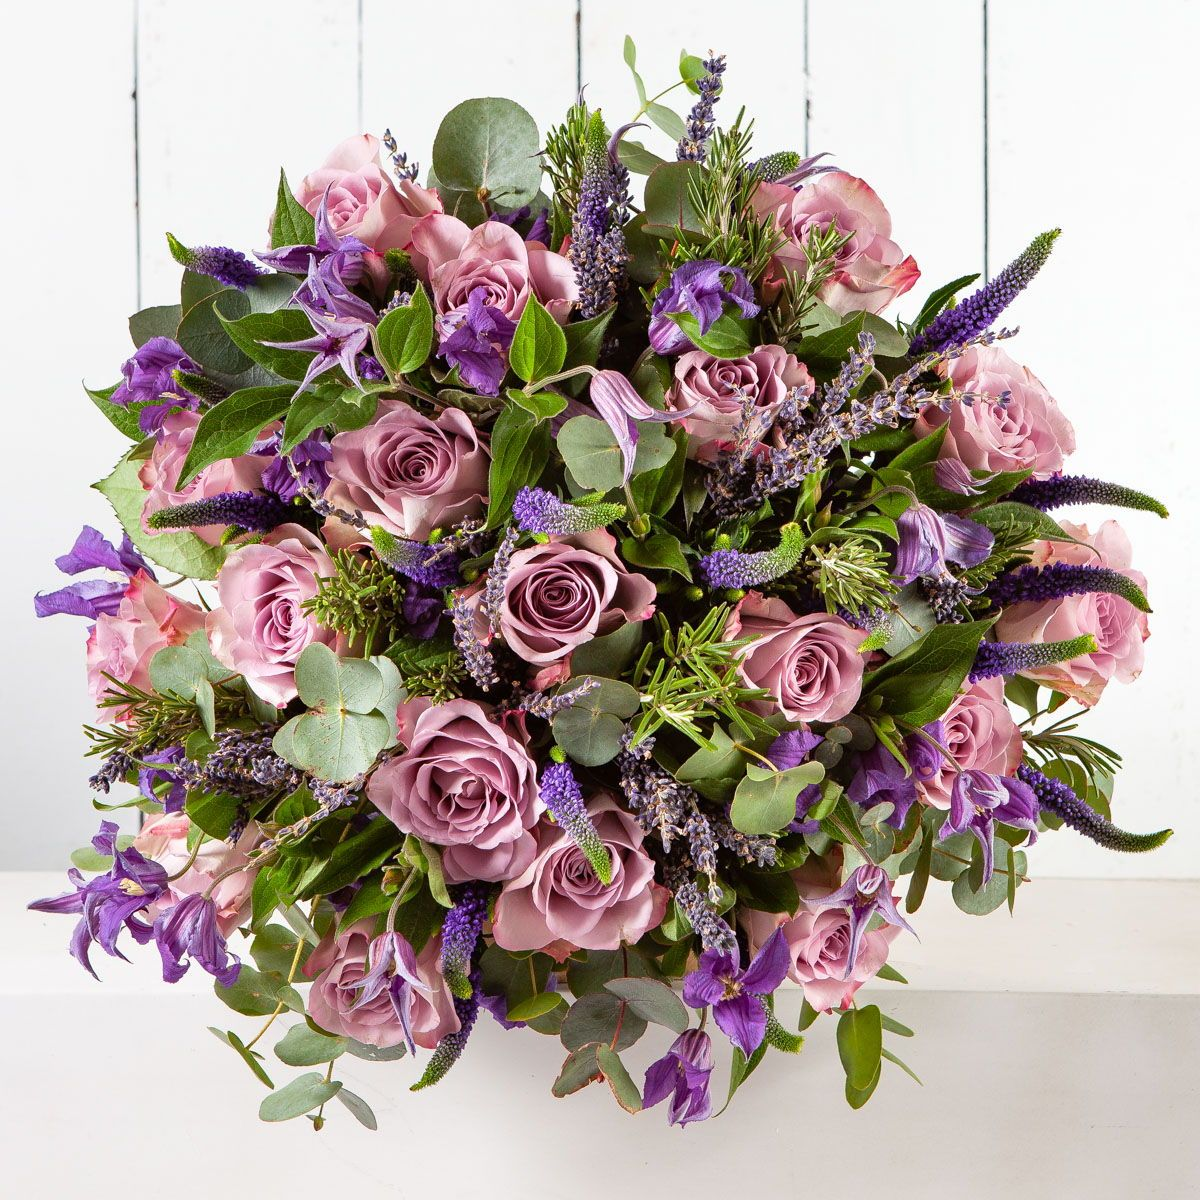 Lilac Toned Valentines Bouquet With Lilac Roses From Our Floral Love Potion Range With Images Flower Service Funeral Flowers Same Day Flower Delivery